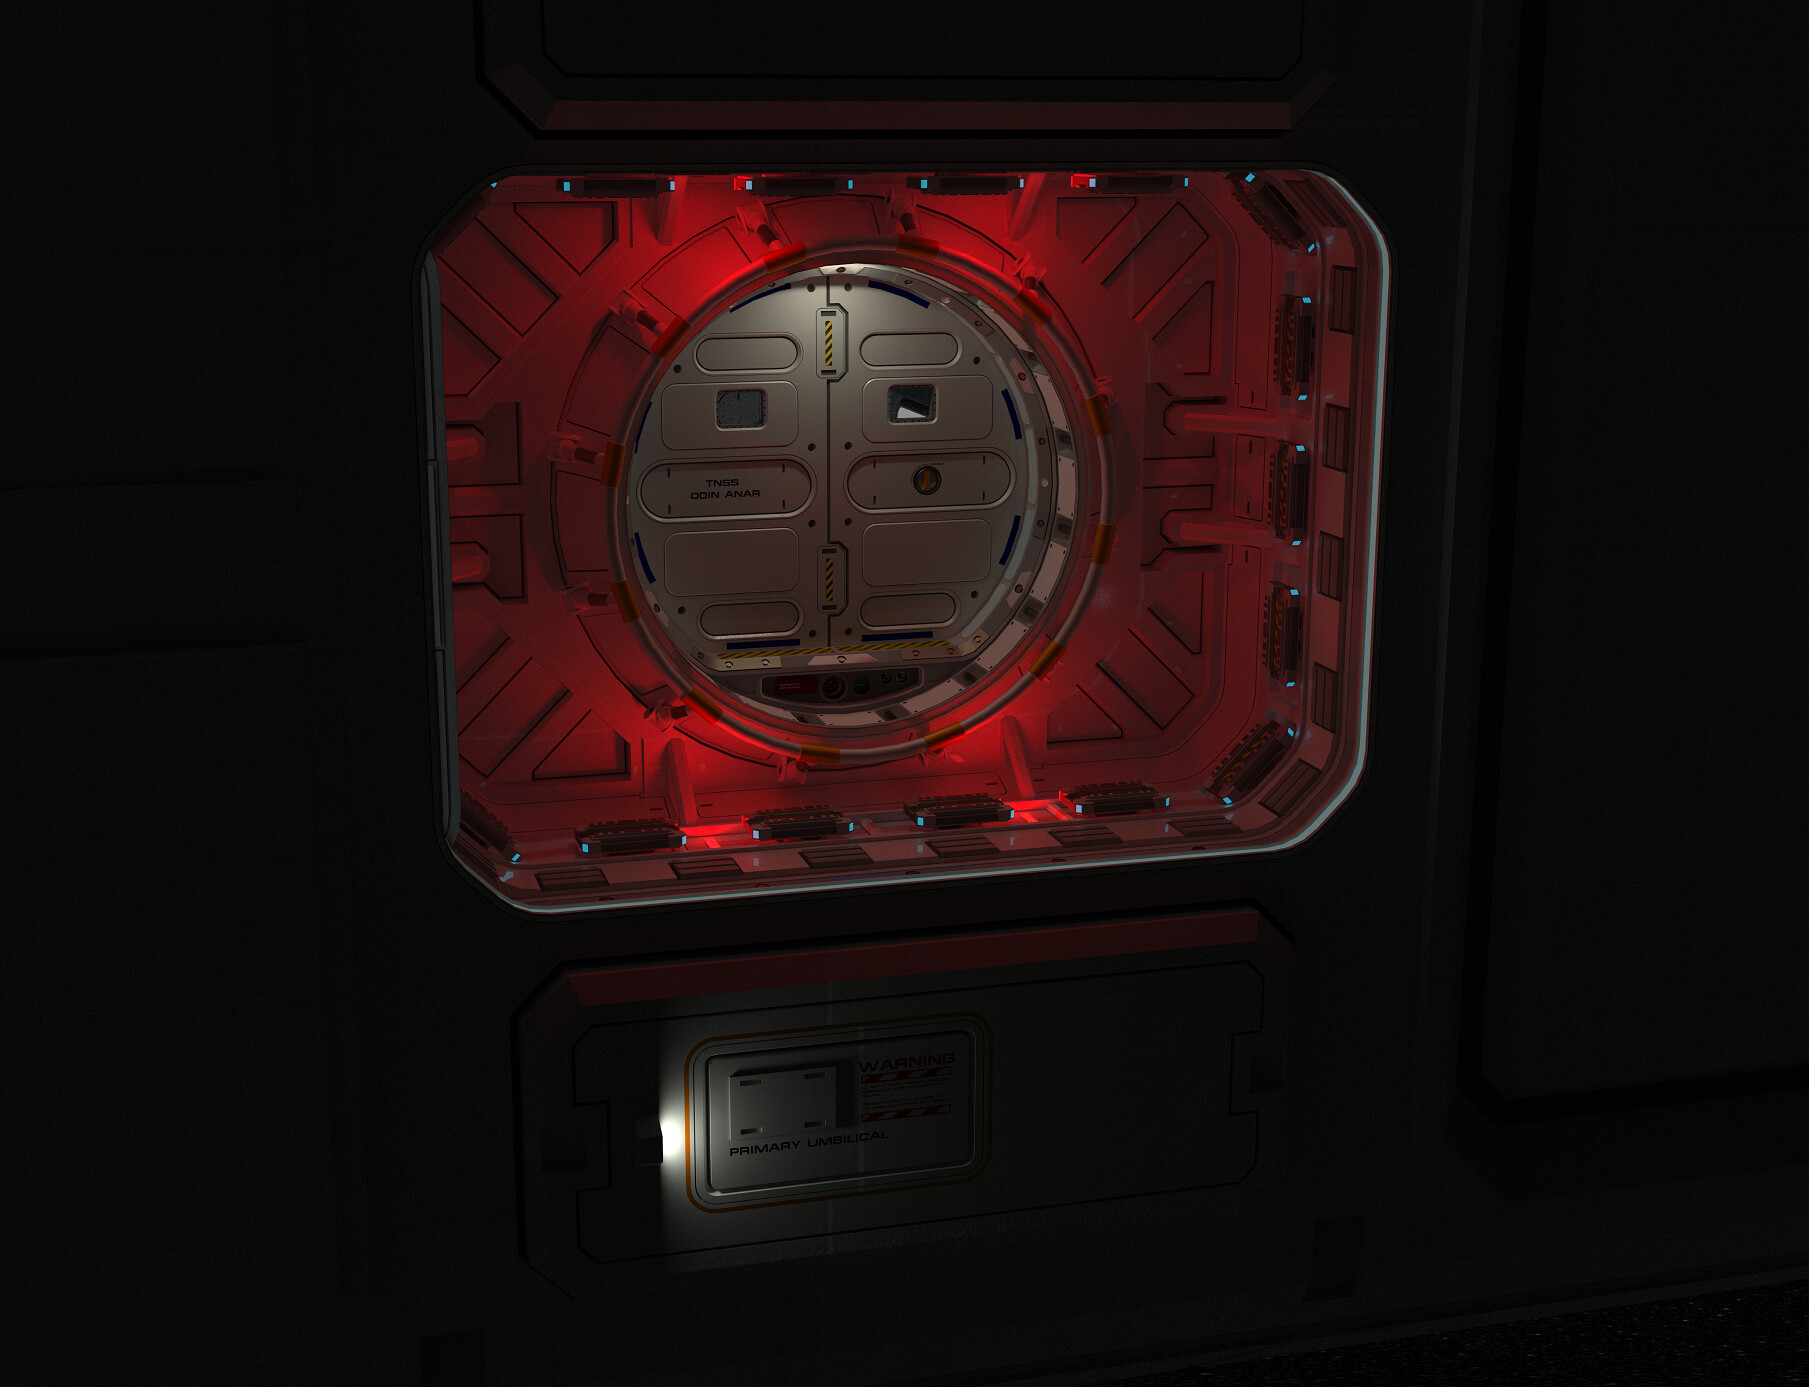 kiri-hunter-docking-port-small.jpg?1578800279